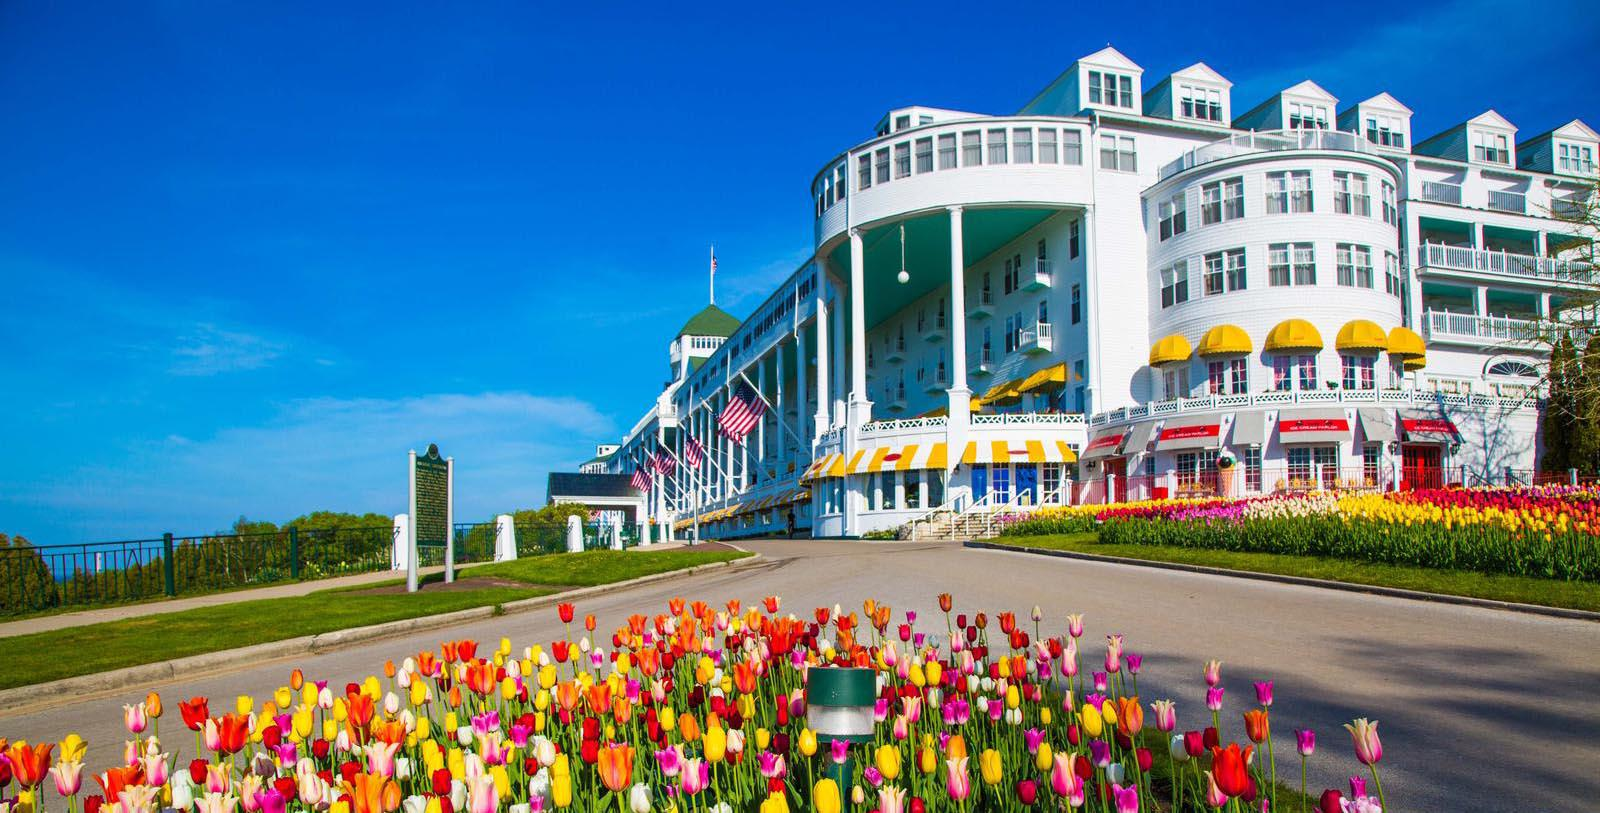 Image of hotel exterior at Grand Hotel, 1887, Member of Historic Hotels of America, in Mackinac Island, Michigan, Special Offers, Discounted Rates, Families, Romantic Escape, Honeymoons, Anniversaries, Reunions